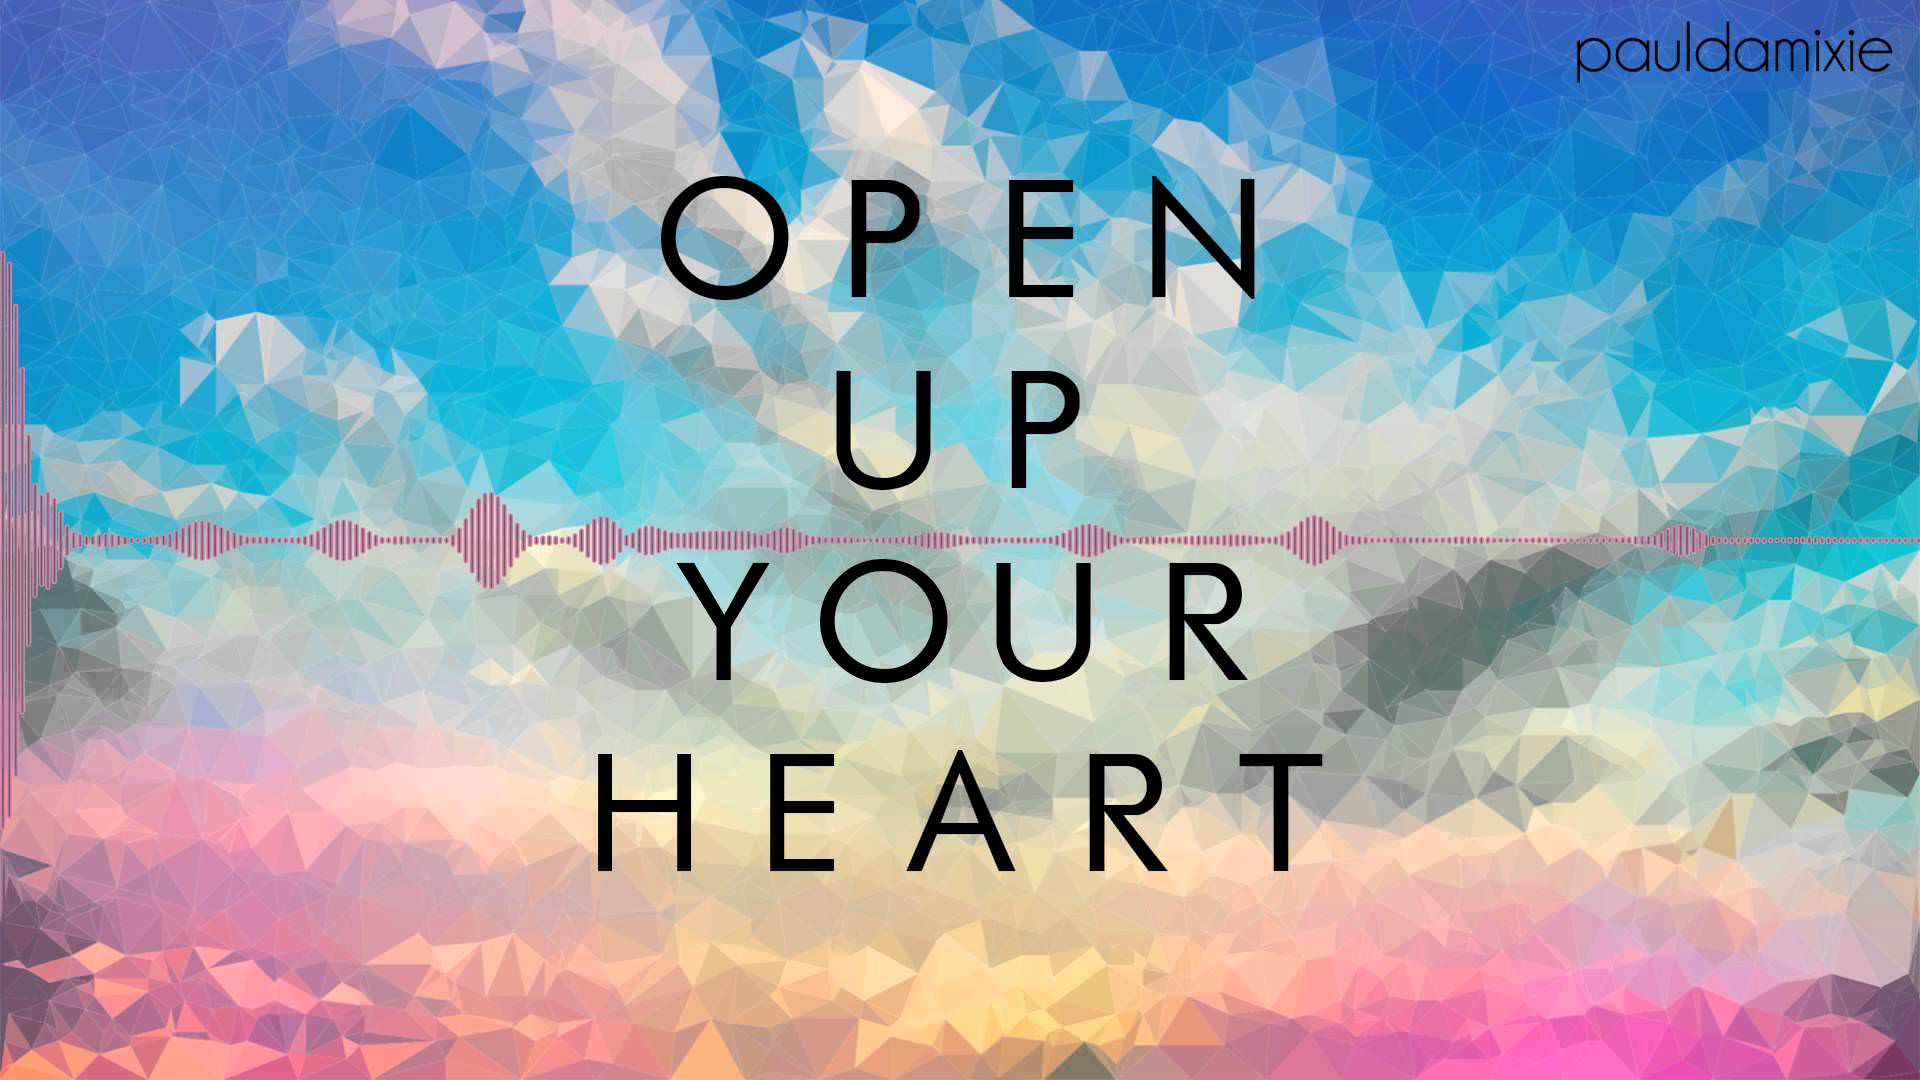 Open up your heart and the sky is yours...!